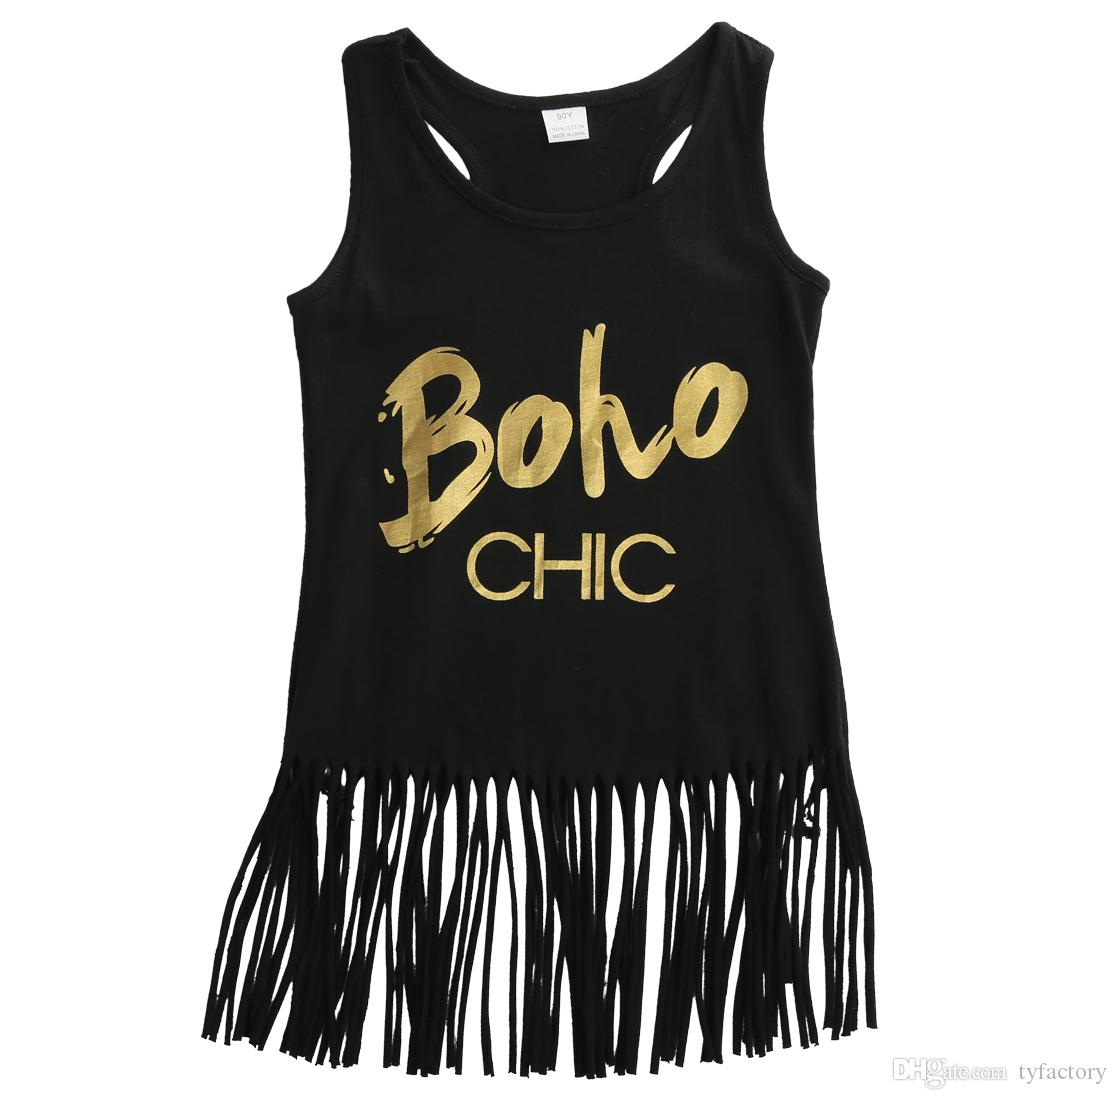 australian business letter format%0A      Black Sleeveless Girls T Shirt Tassel Style Gold Letters Boho Print  Lovely Fashion Children Summer Clothing T Shirts Kids Tops From Tyfactory